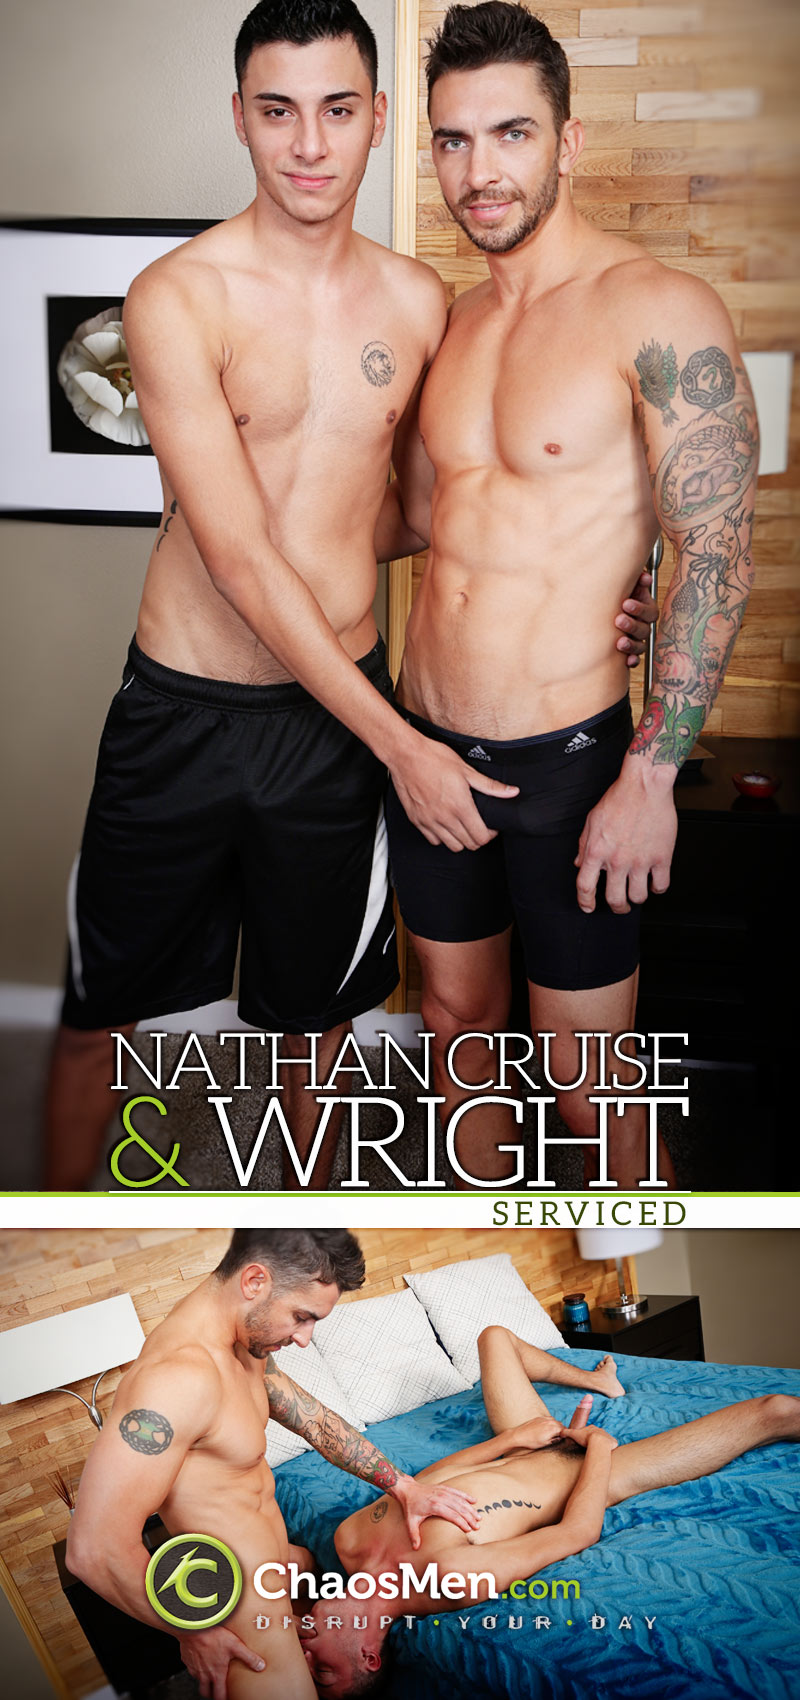 Nathan Cruise & Wright (Serviced) at ChaosMen